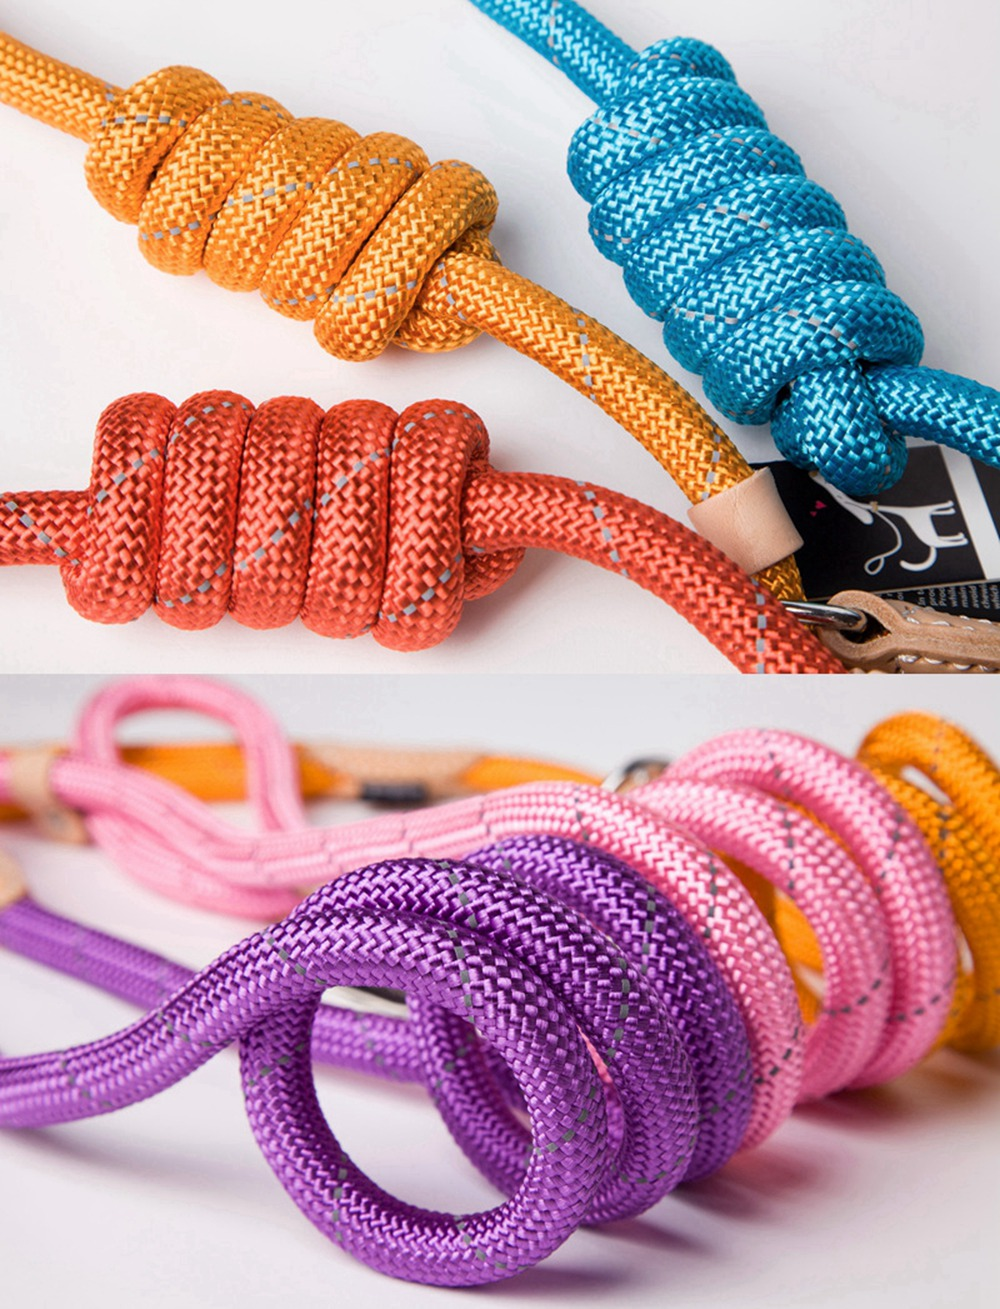 Pet Products Dog Leash Nylon Reflective Puppy Dog Leash Rope Cat Chihuahua Pet Leash And Collar Set Cat Dog Leashes Lead Harness (13)